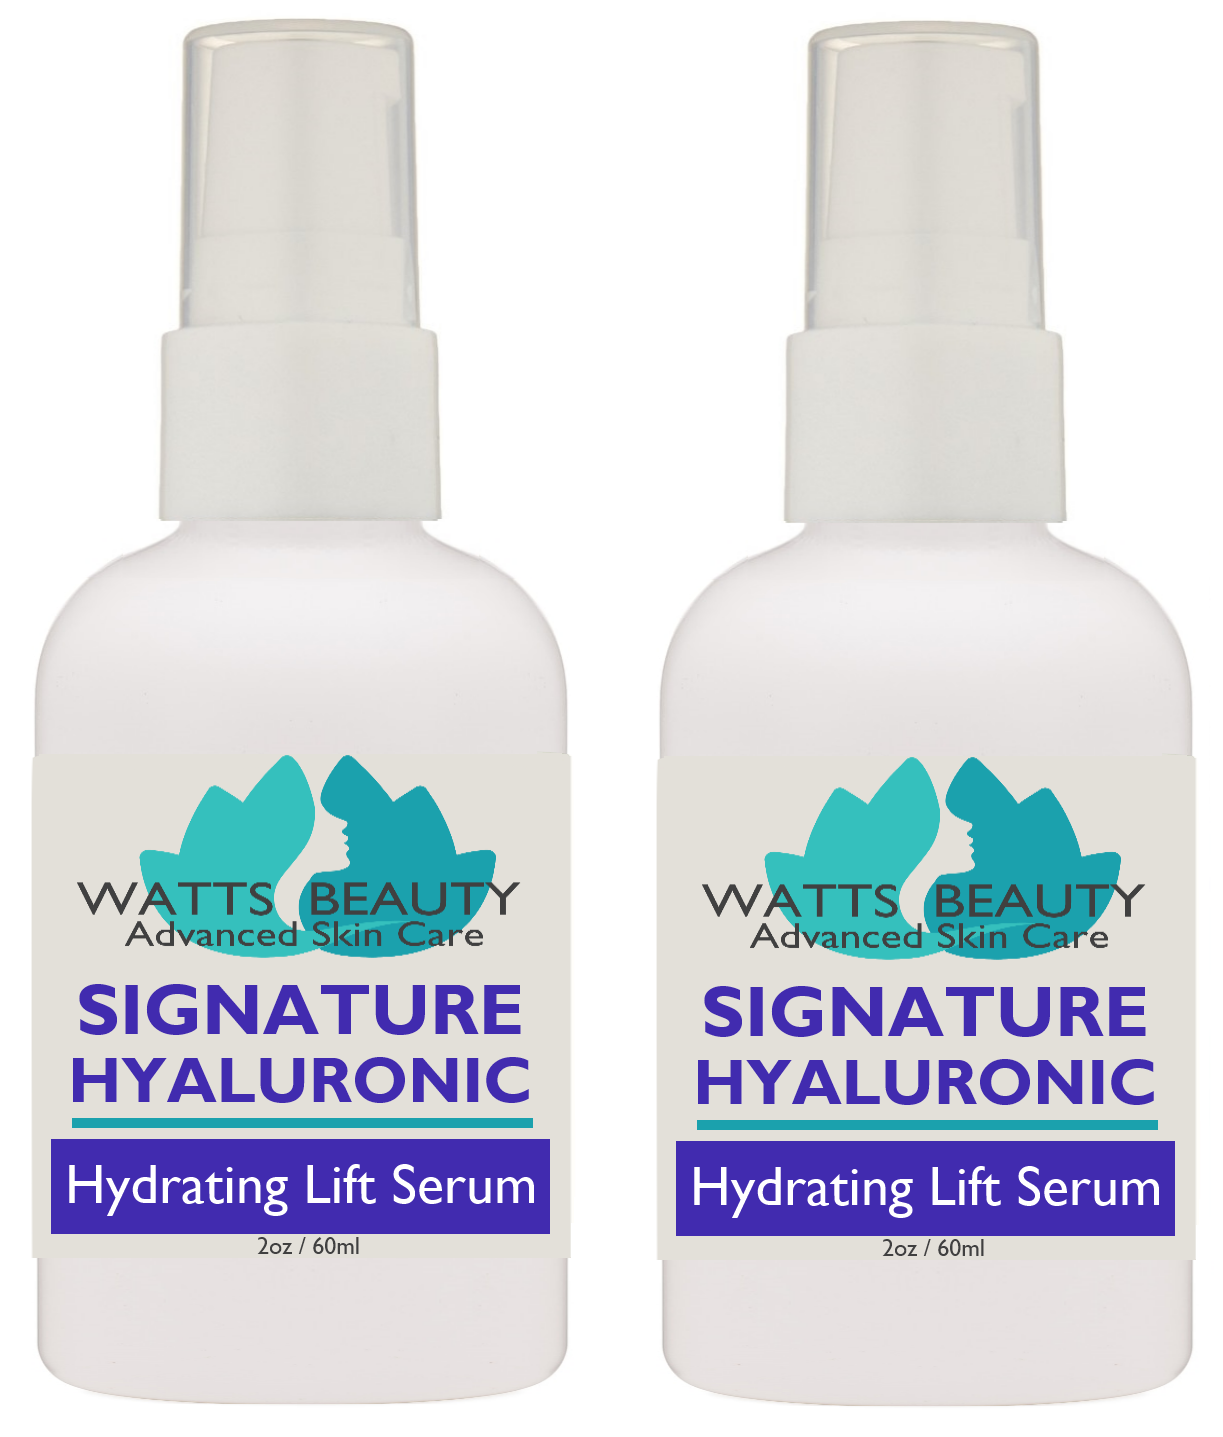 Watts Beauty 100% Signature Pure Hyaluronic Acid Serum 4 oz - Pack of 2